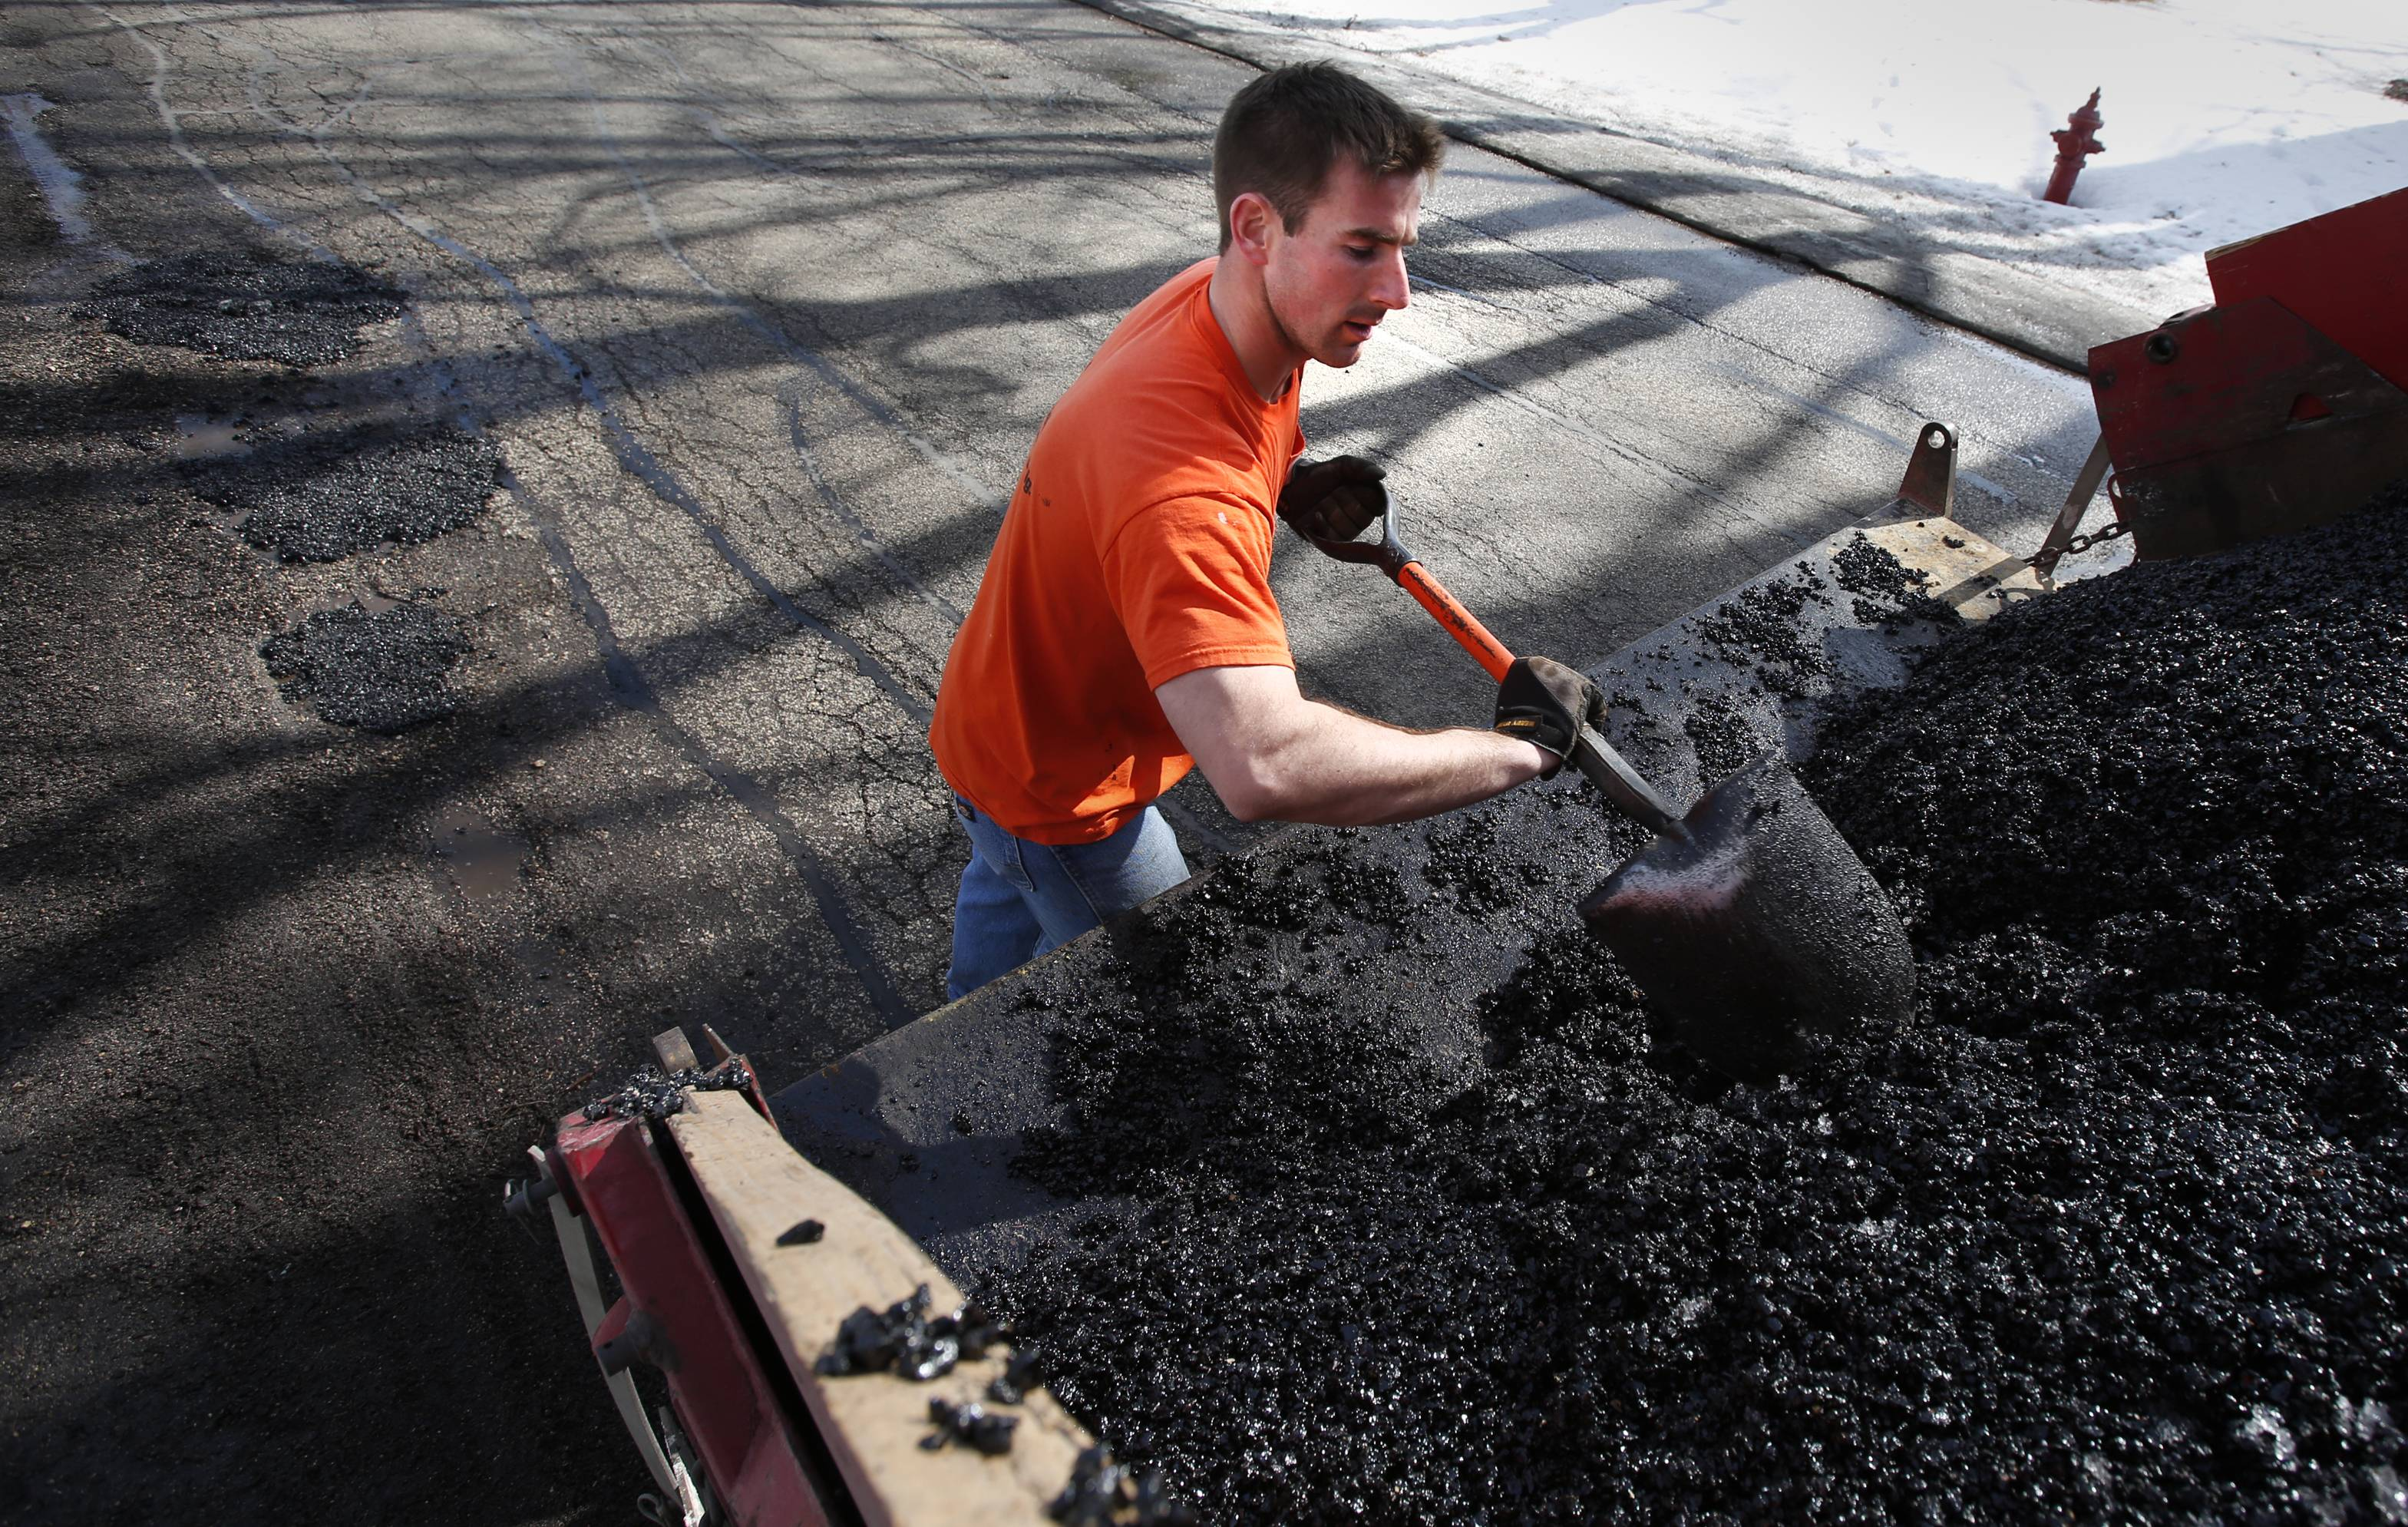 Sleepy Hollow public works employee Kyle Killinger fills in potholes along Willow Drive Monday, while wearing a short-sleeved shirt. Even though pothole season continues, at least those that work outside got a huge break Monday with spring-like temperatures.